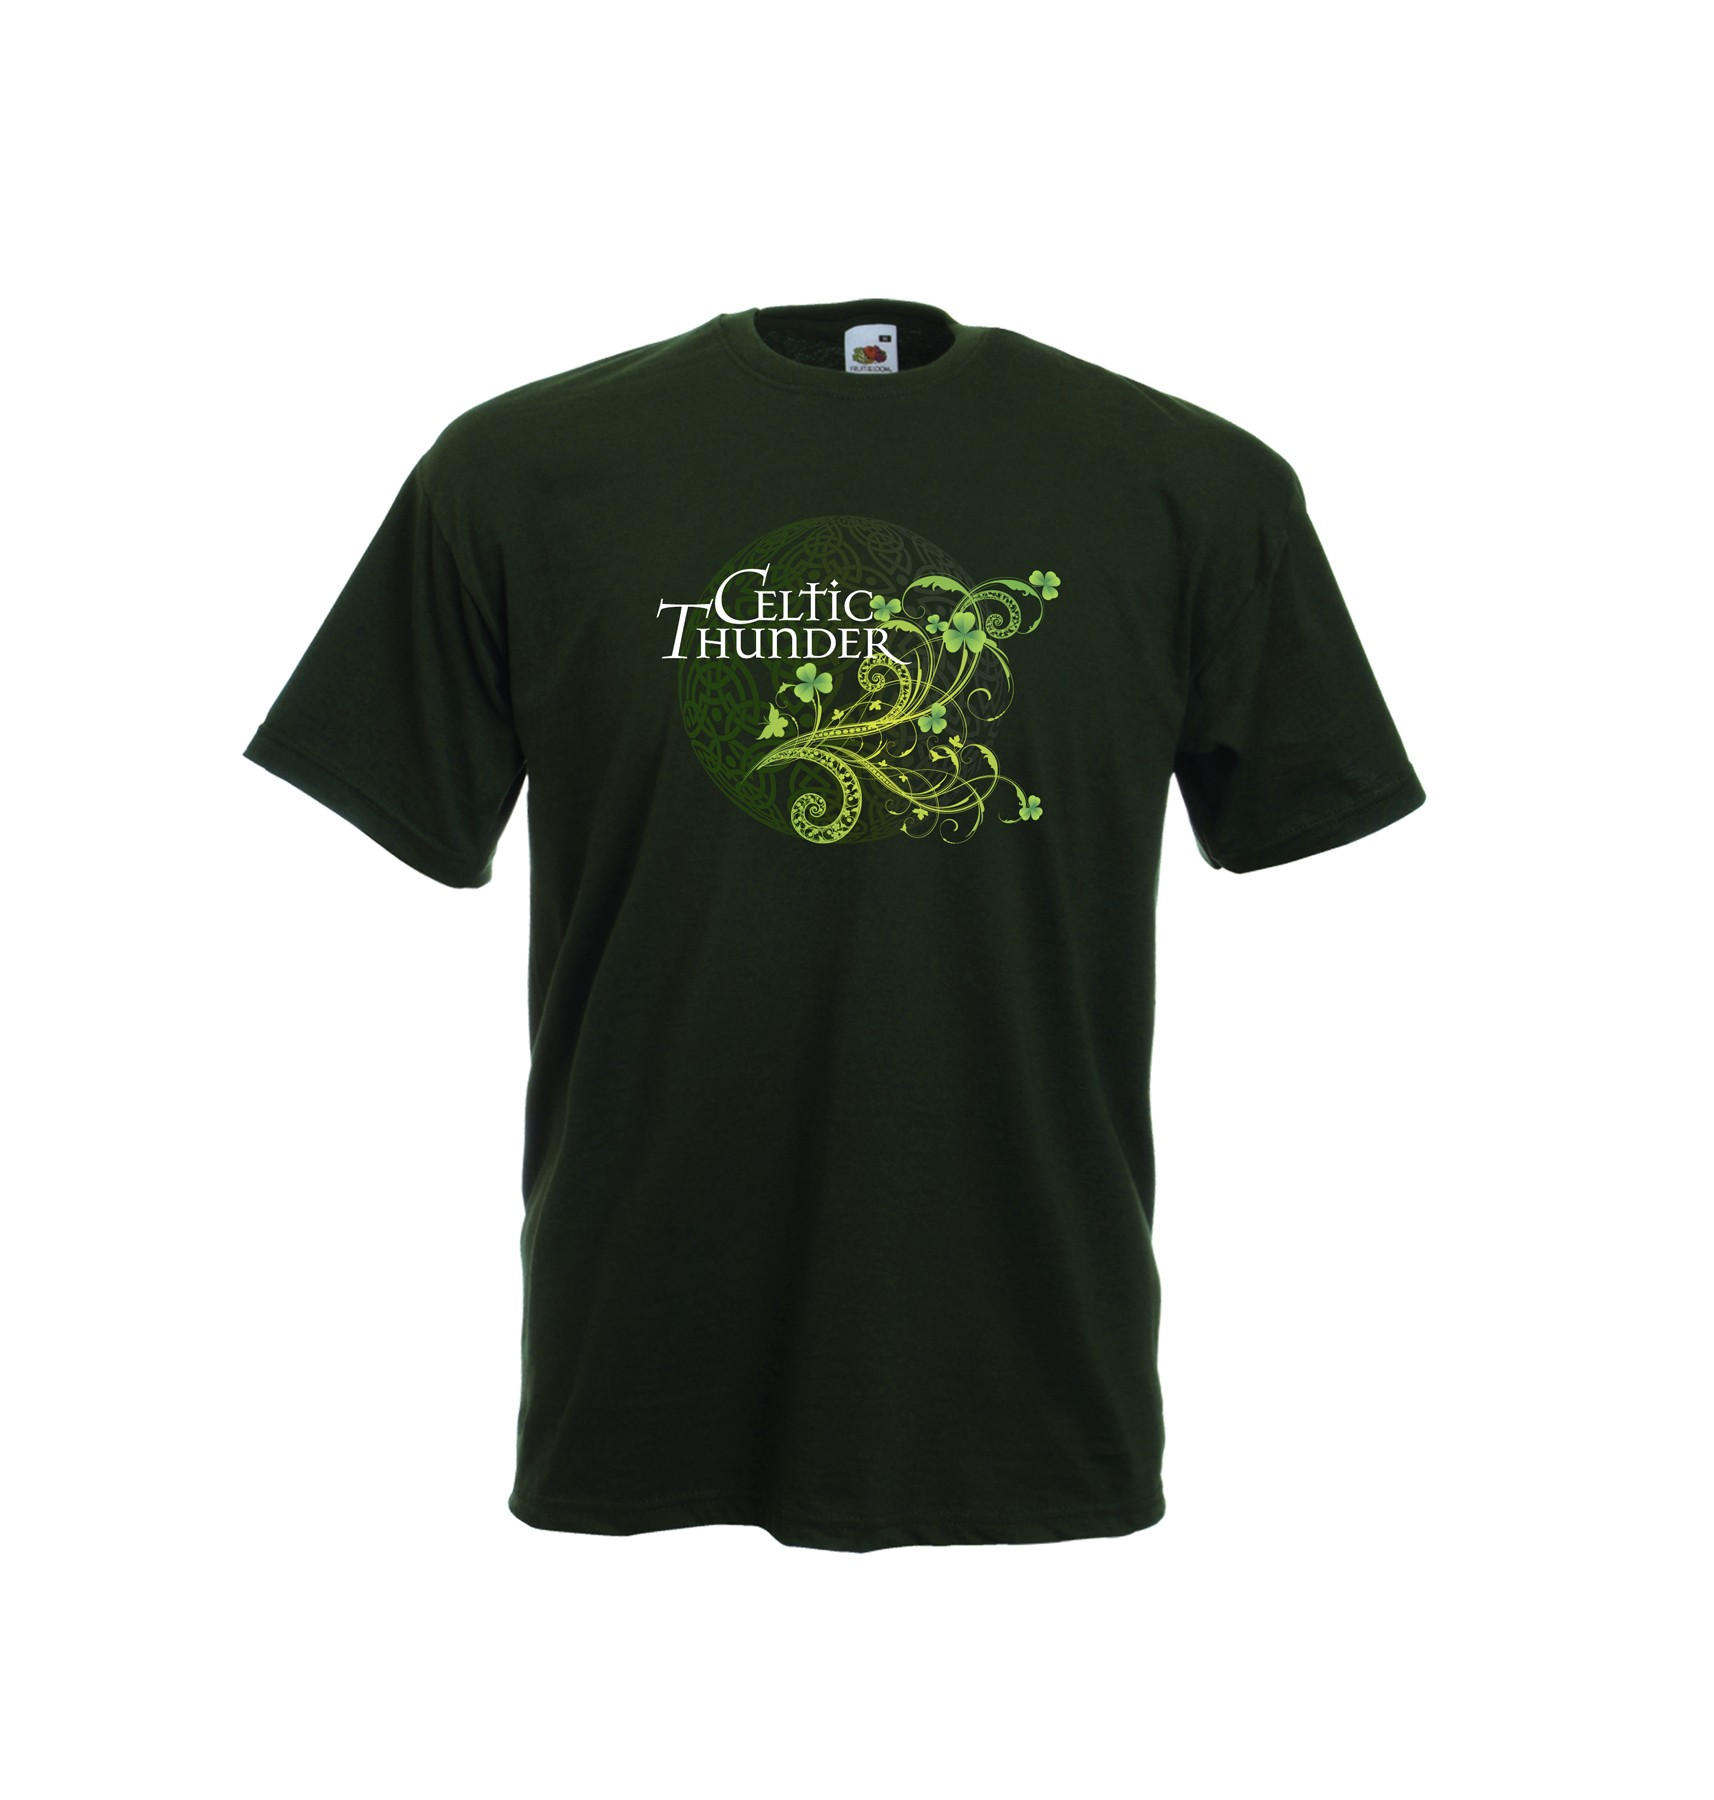 3D Filigree Irish Forest Green Tee